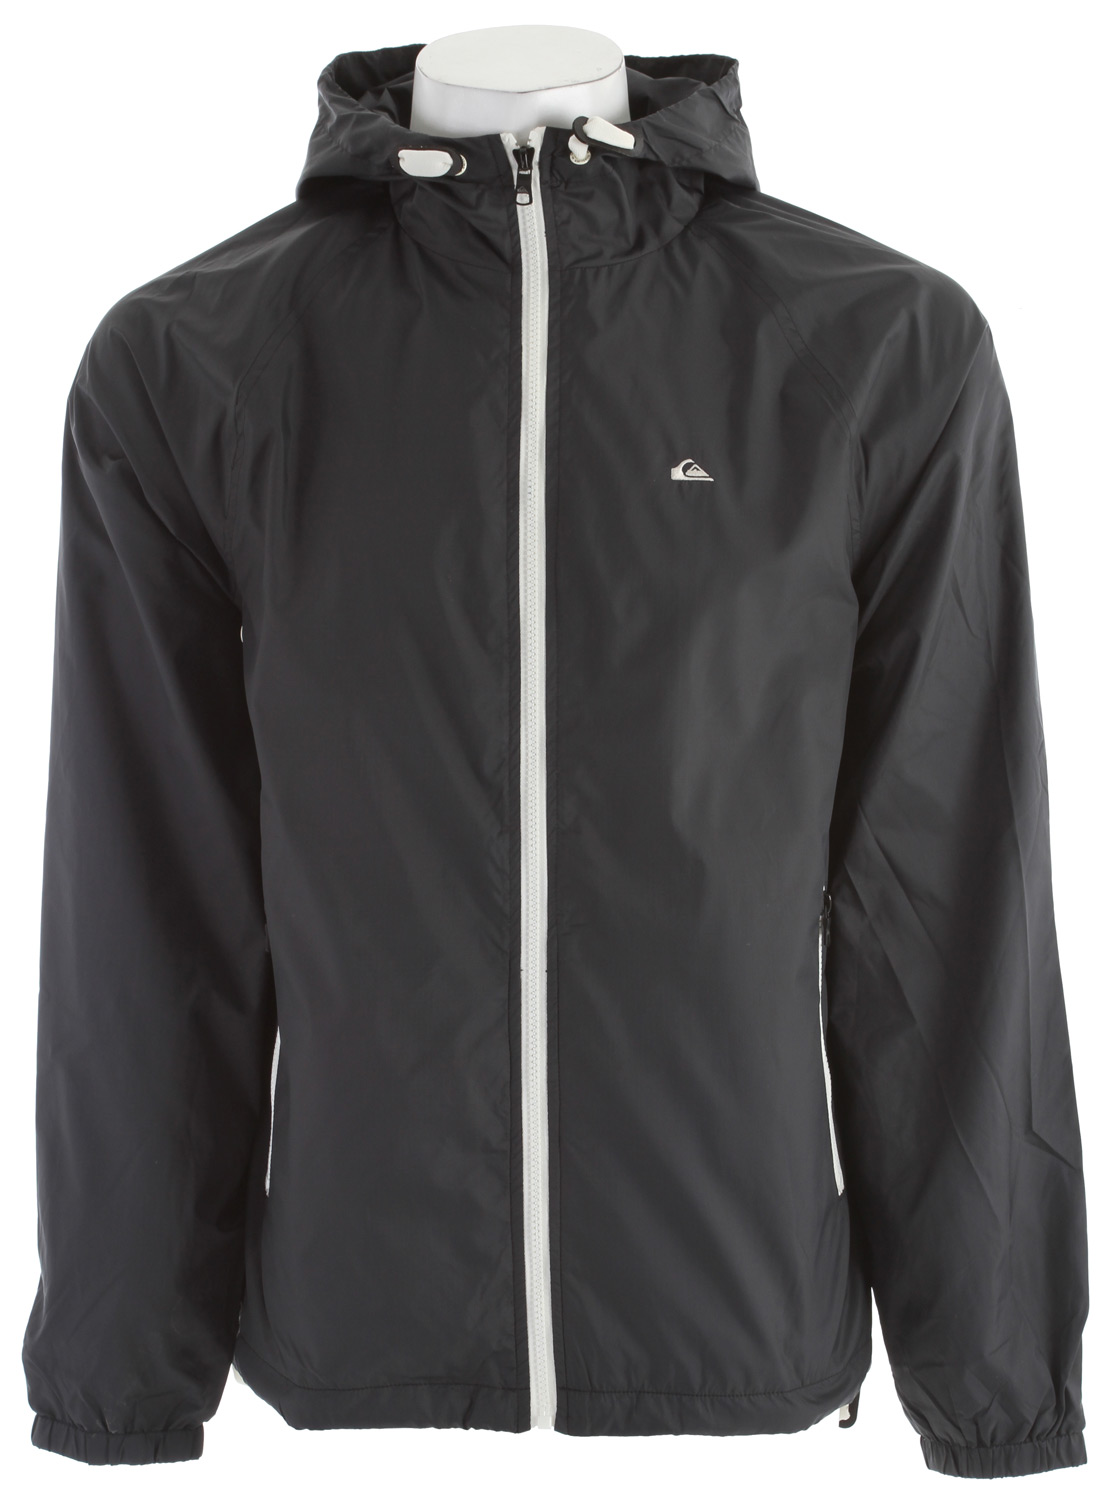 Surf Key Features of the Quiksilver Spencer Jacket: 100% polyester Micro ripstop packable mesh lined windbreaker with self fabric hood lining Flat drawcord with toggle adjustments Elastic cuffs Drawcord adjustment at waist and mountain wave embroidery at left chest - $48.95